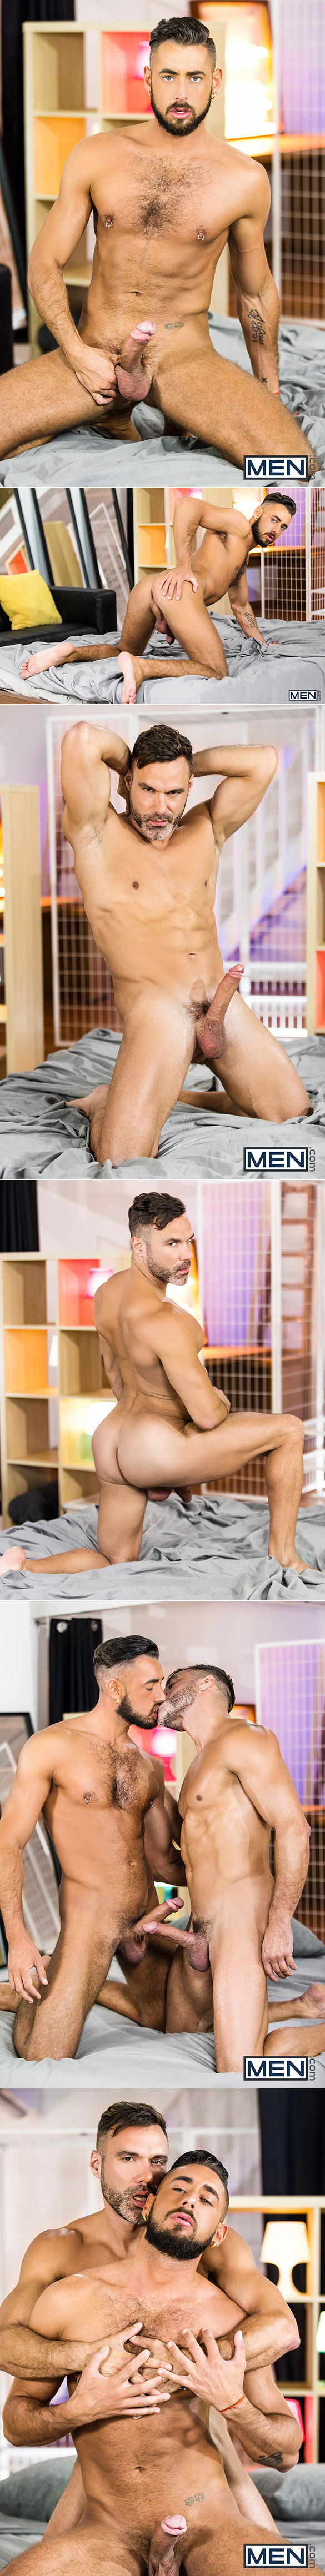 "Men.com: Manuel Skye fucks Massimo Piano in ""The Genie, Part 3"""